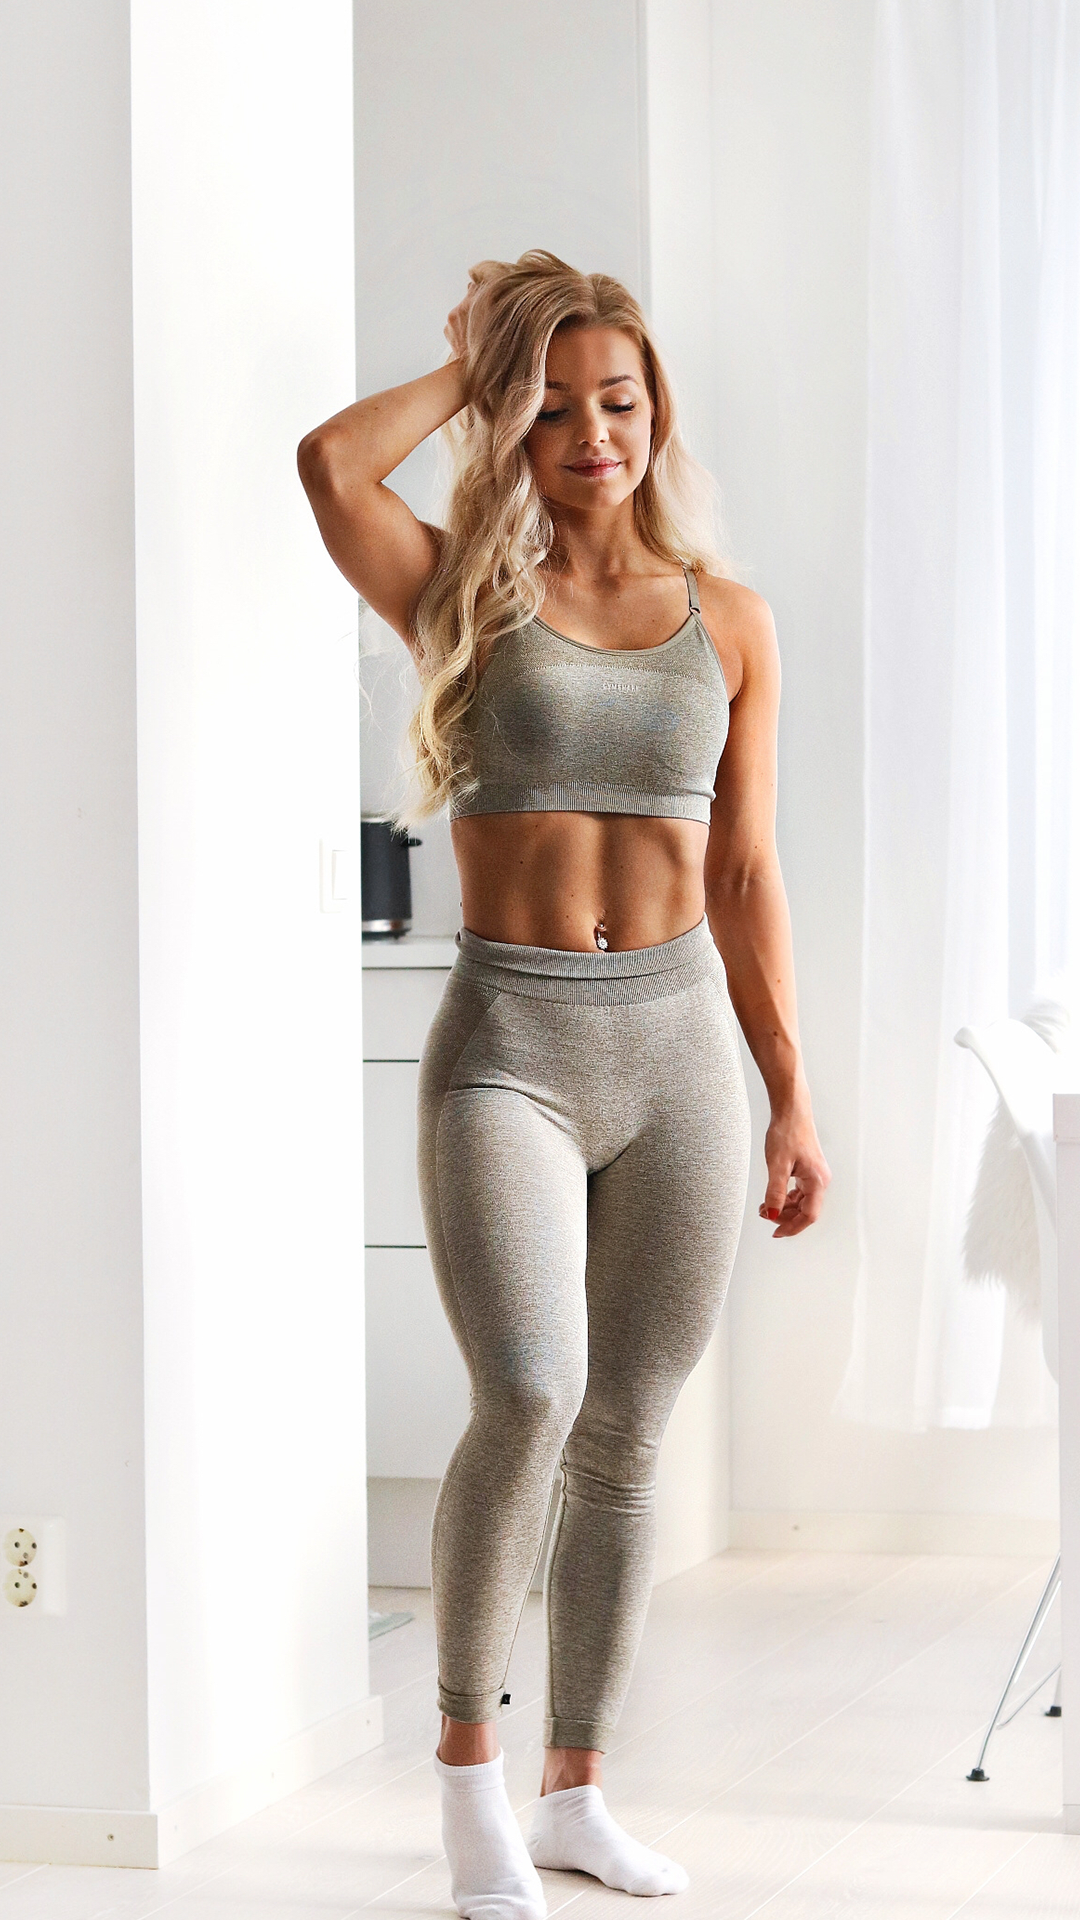 7d5e0bae9ce82 Denice Moberg beautifully styles the High Waisted Flex in Khaki. Which  colour is your favourite? The High Waisted Flex Leggings combine the  signature ...